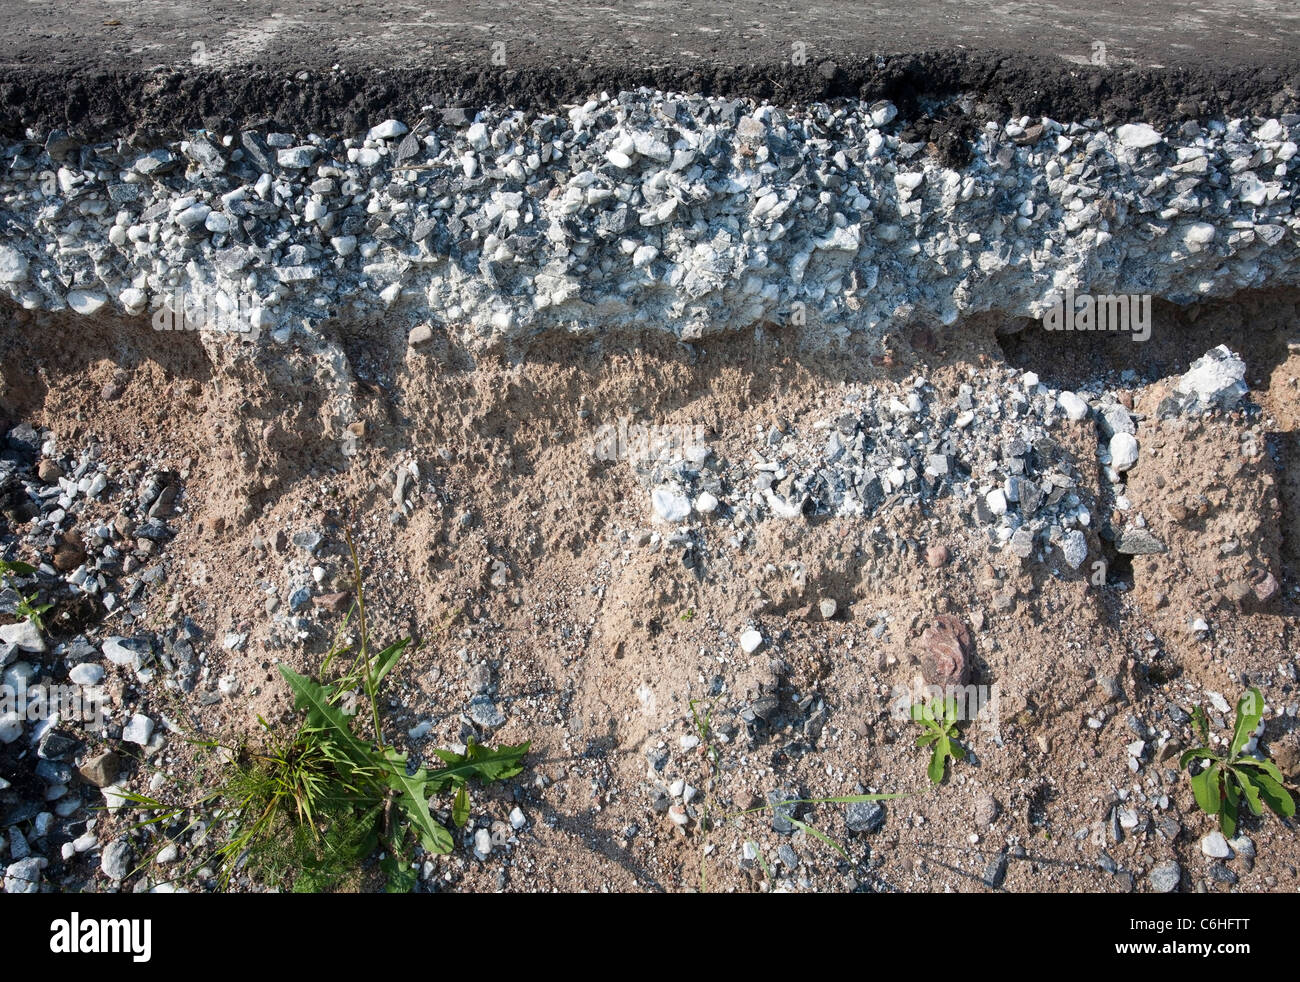 Cross-section showing the layers of road construction - Stock Image